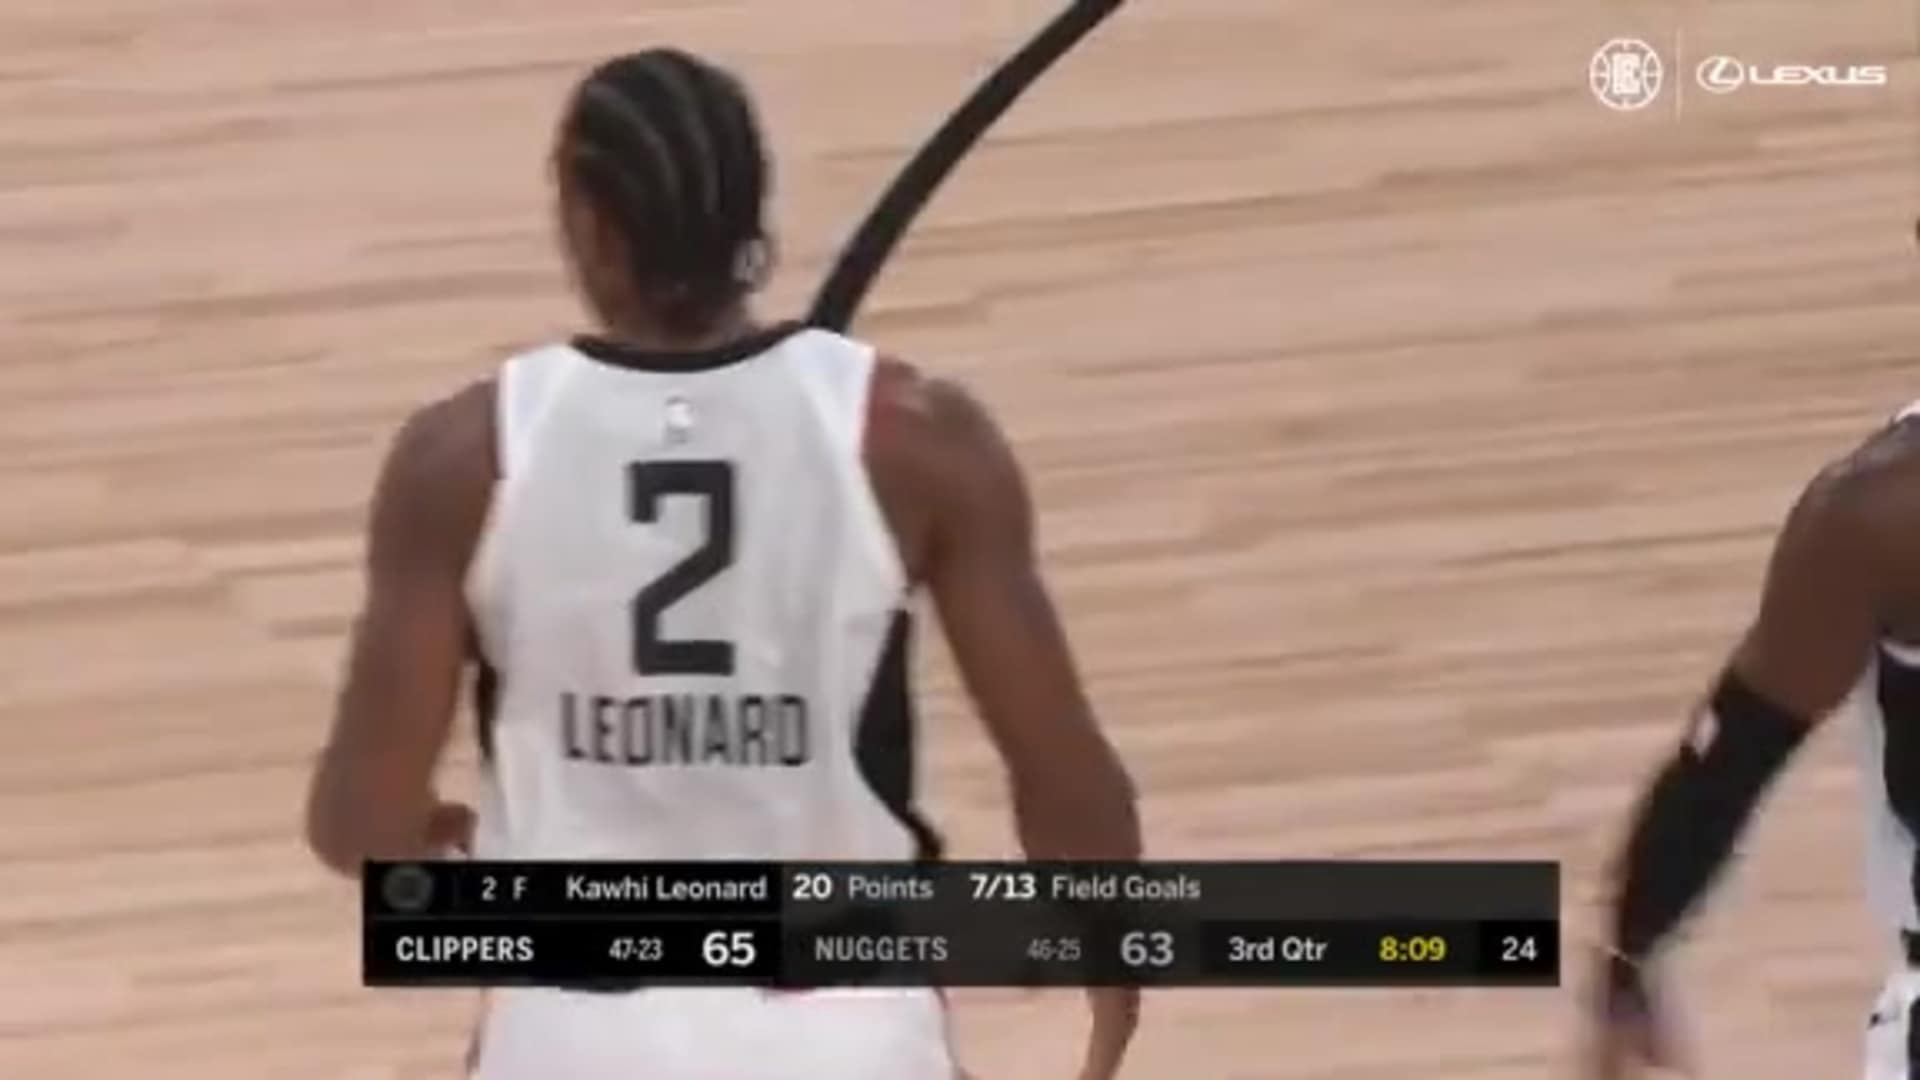 Kawhi Leonard (26 points) Highlights vs. Denver Nuggets